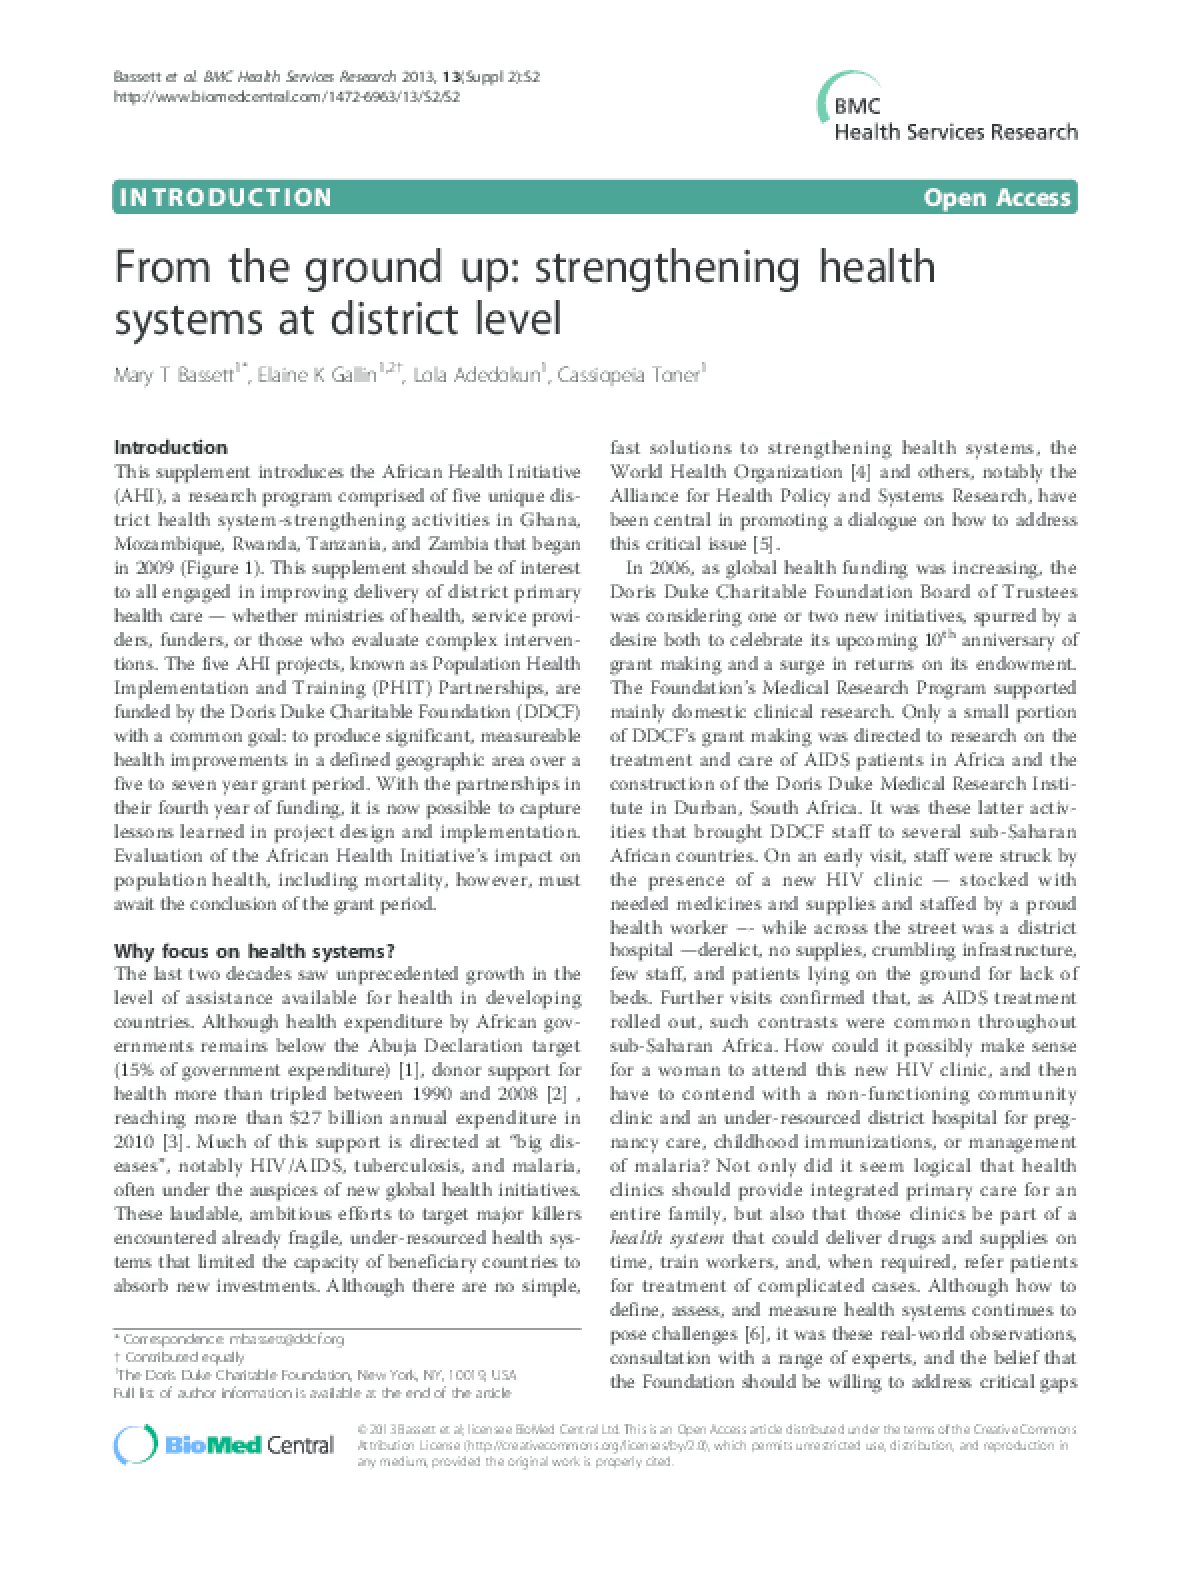 From the Ground Up: Strengthening Health Systems at District Level (Introduction)